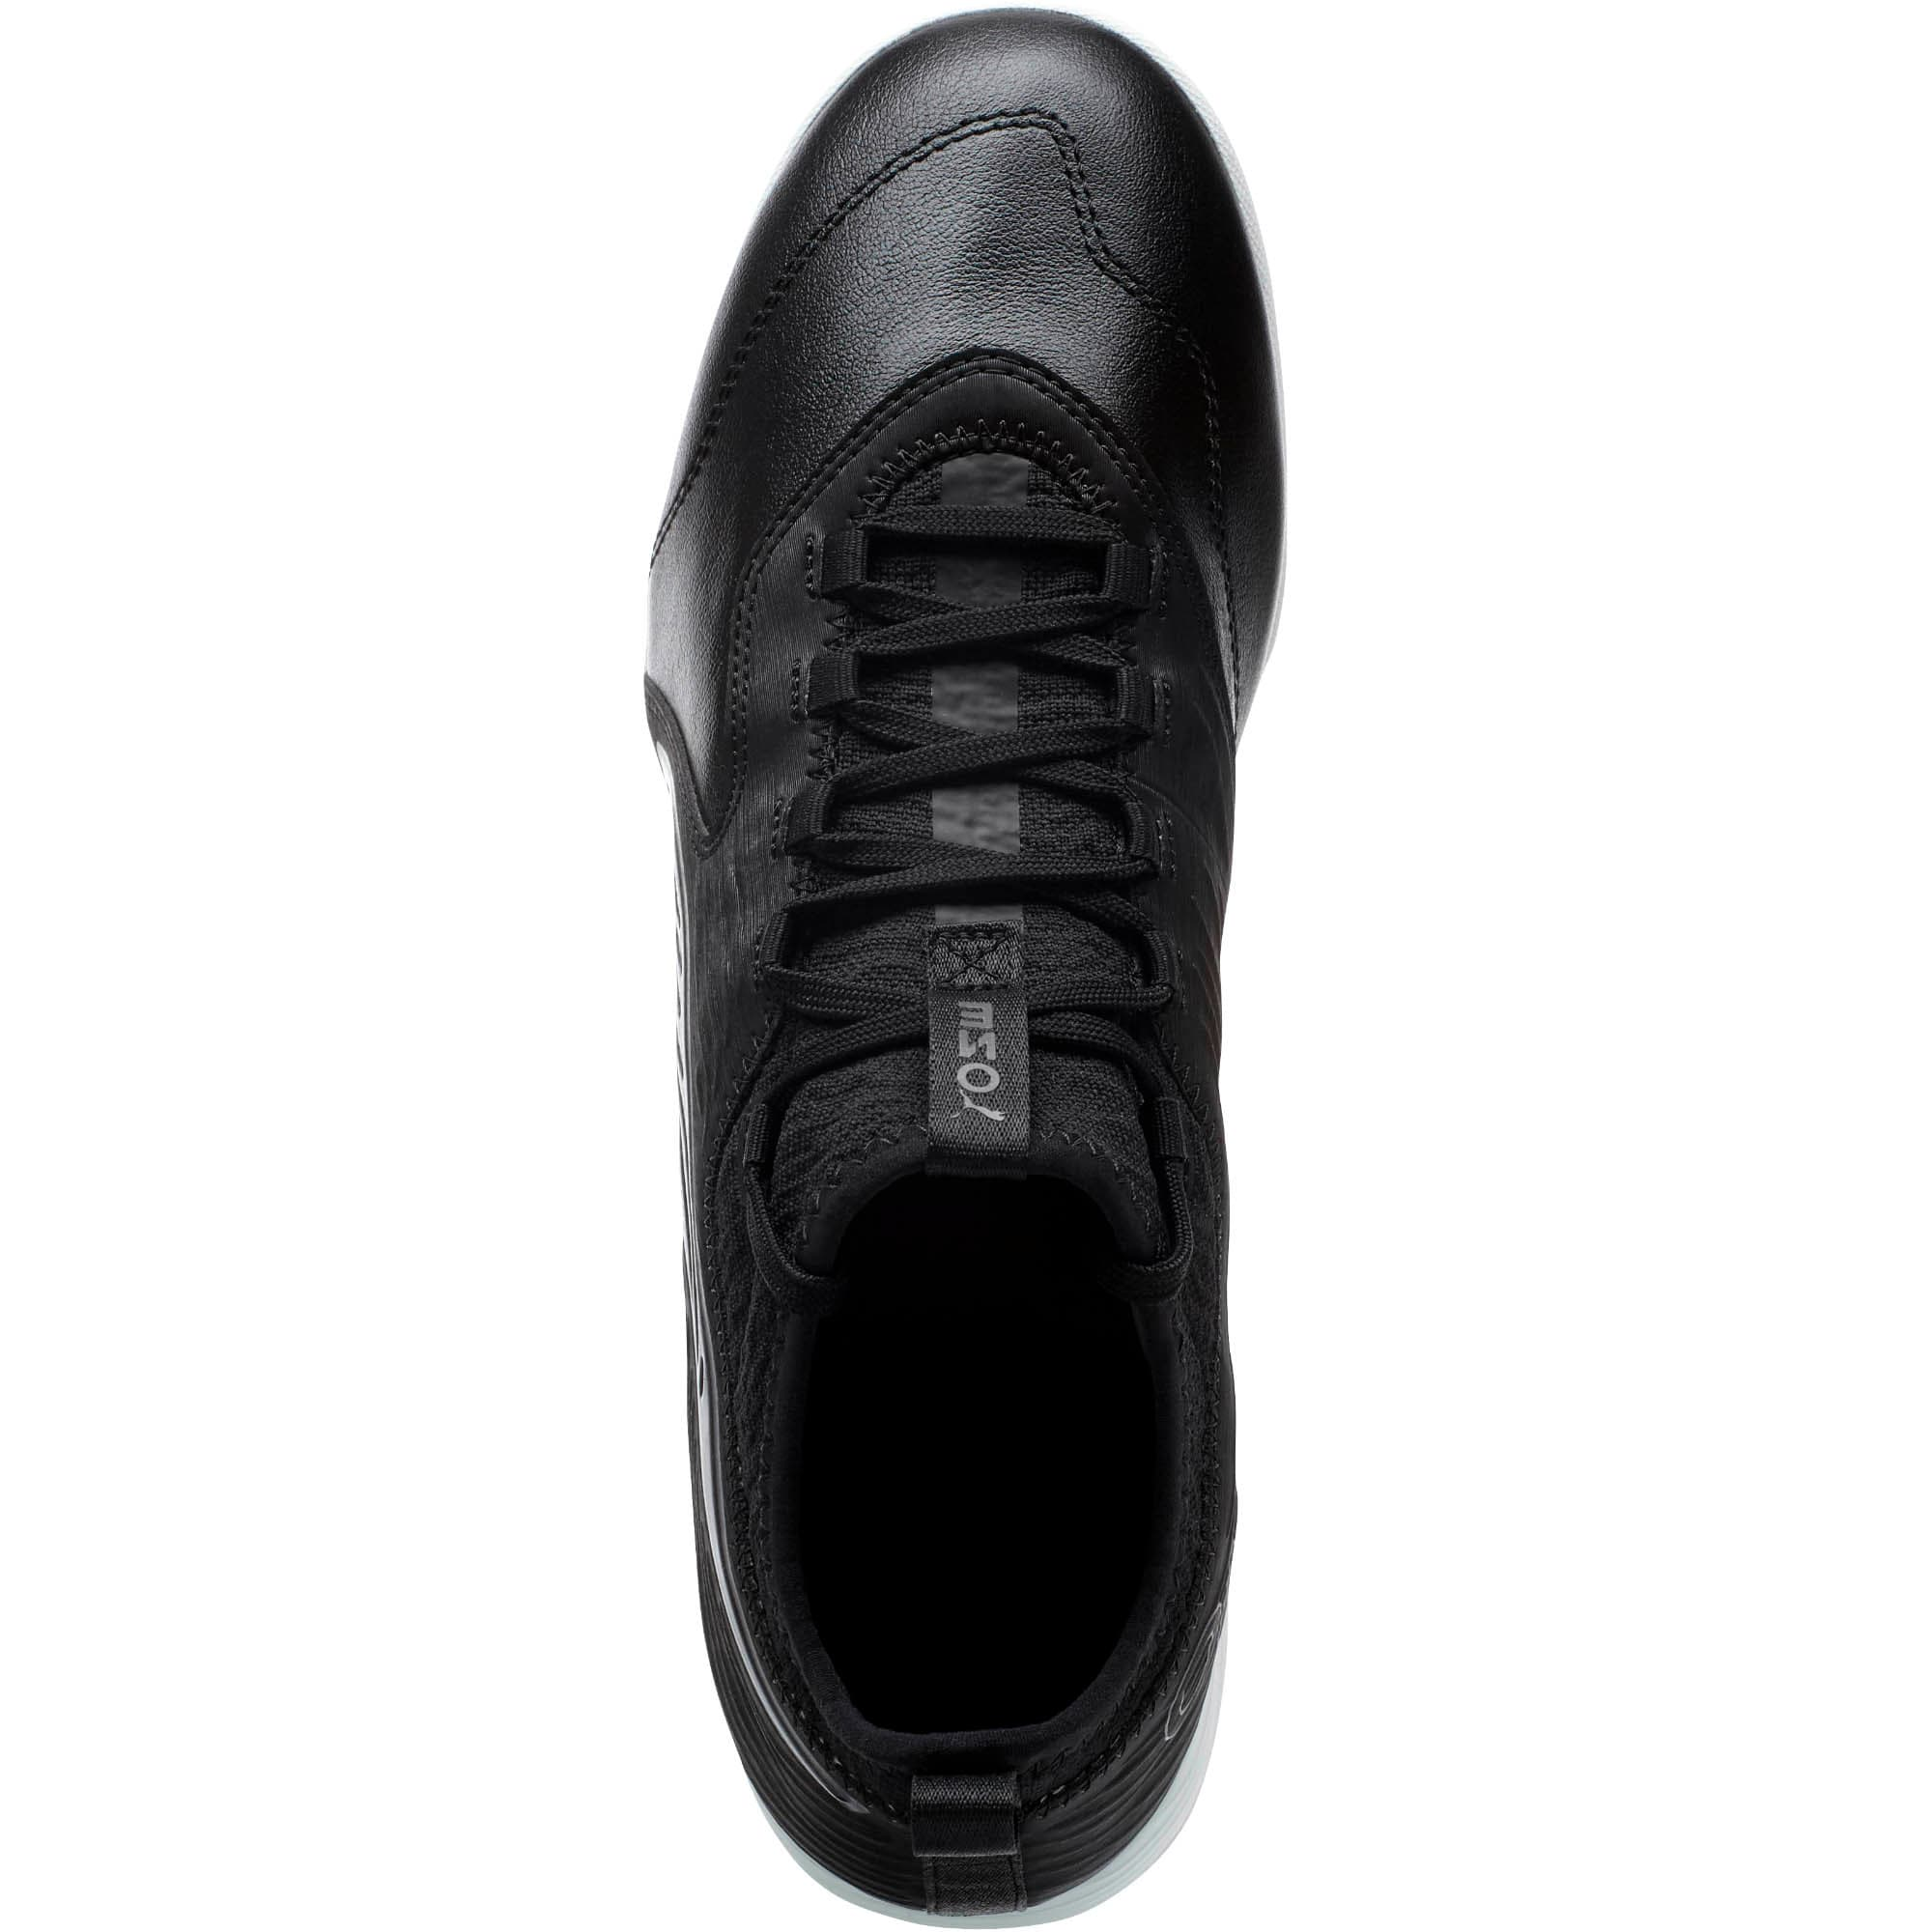 Thumbnail 5 of PUMA ONE 19.3 IT Men's Soccer Shoes, Puma Black-Puma Black-White, medium